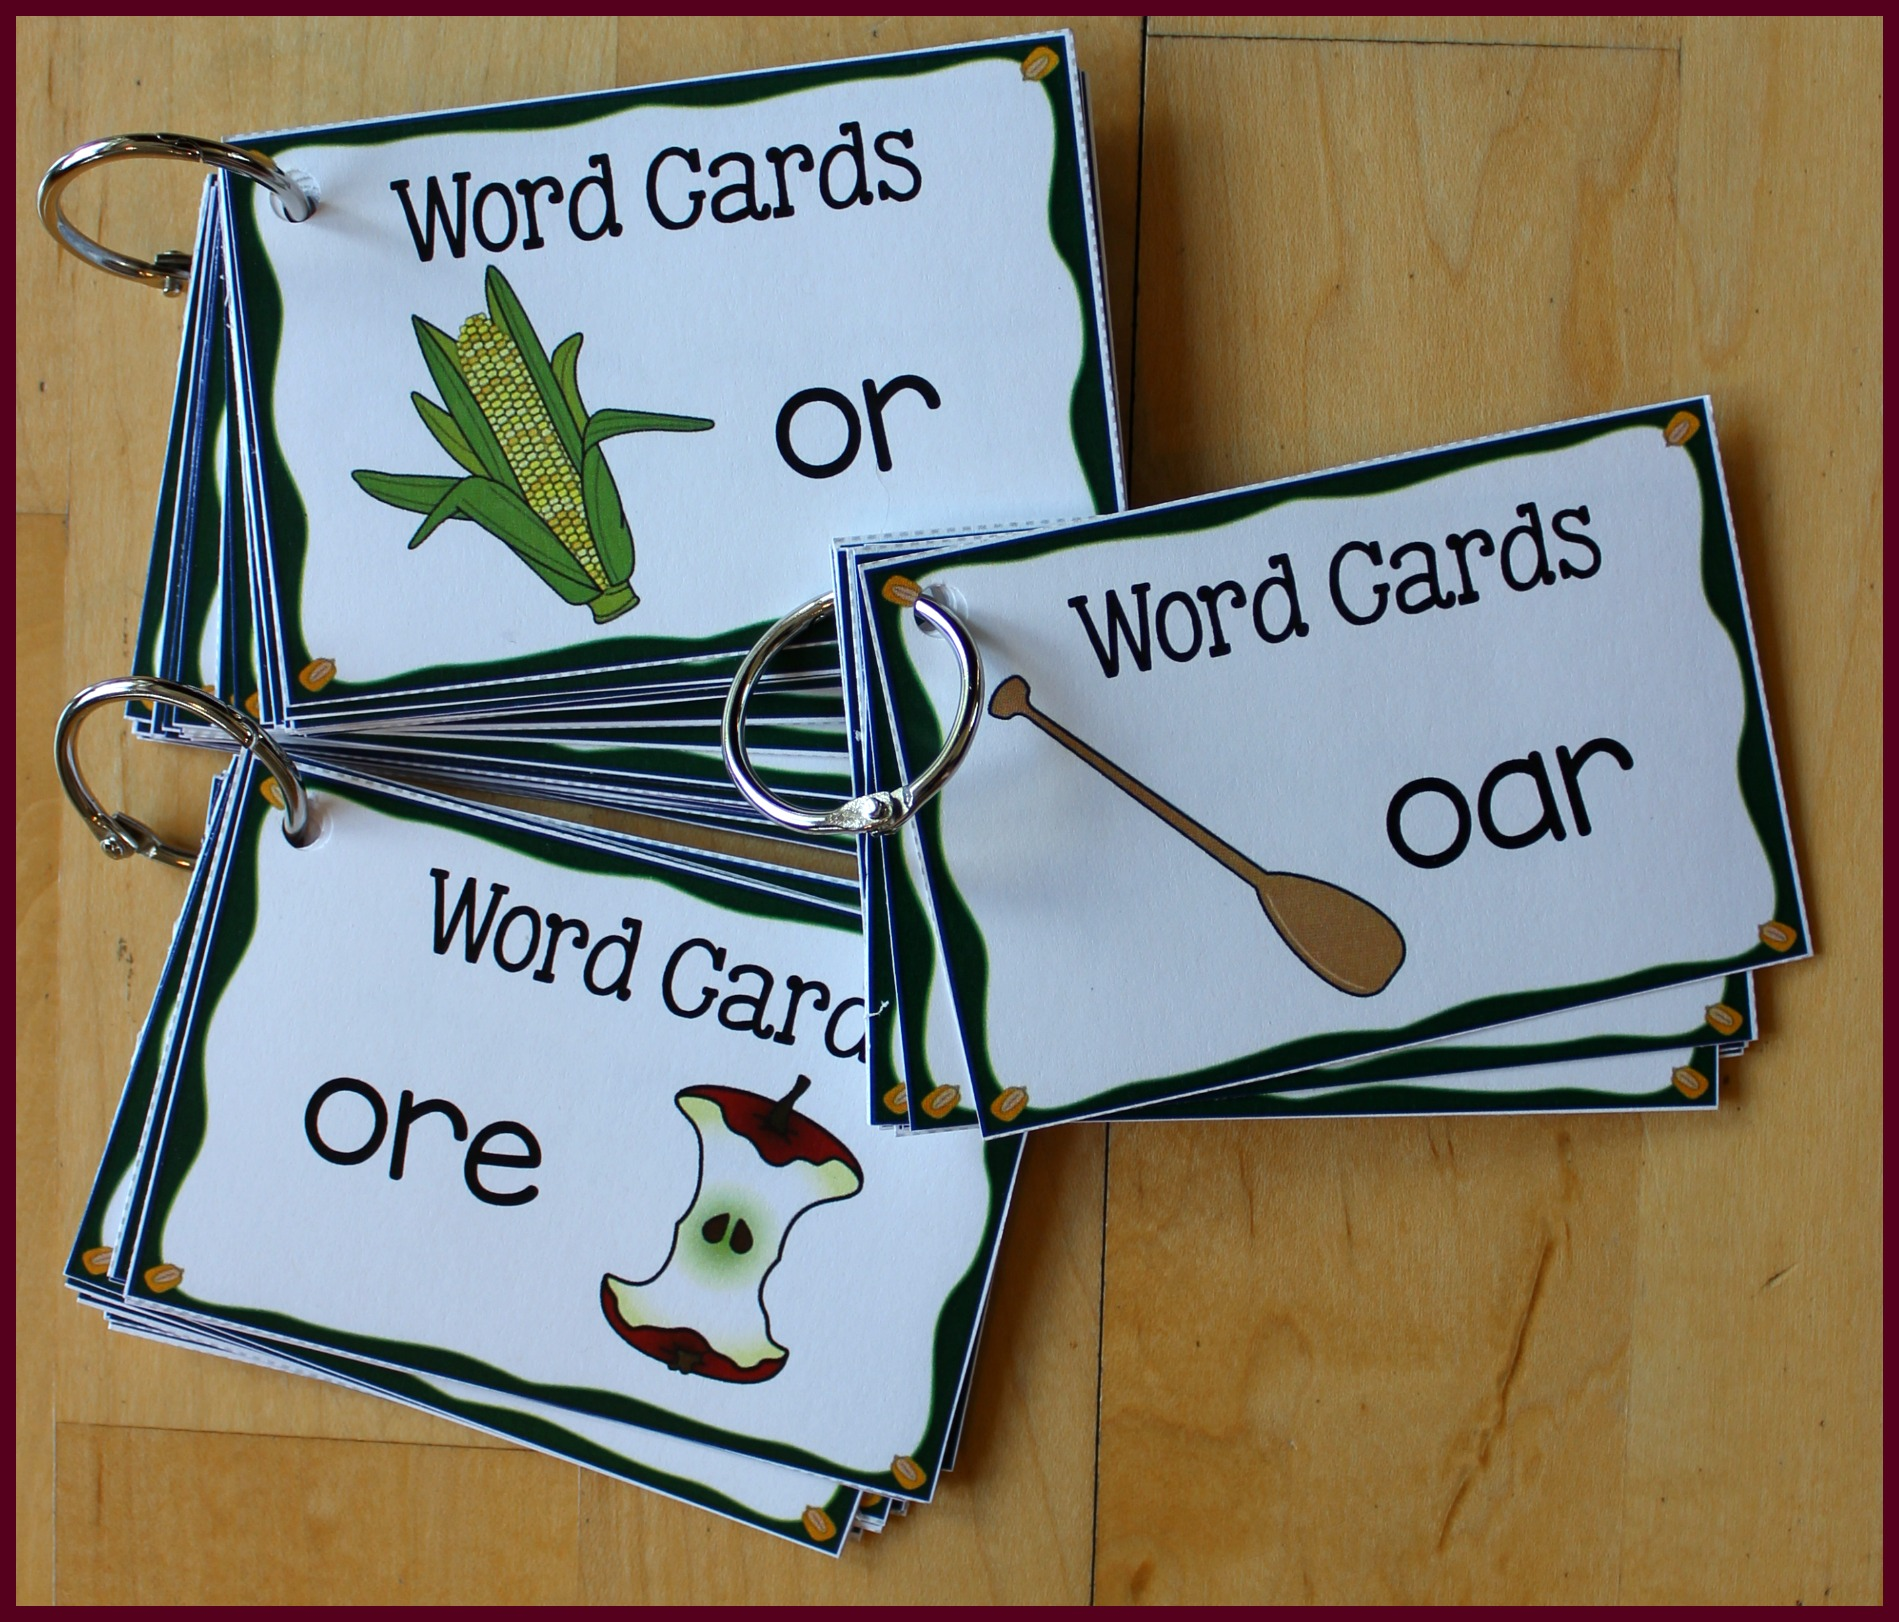 ororeoar_WordCards_border